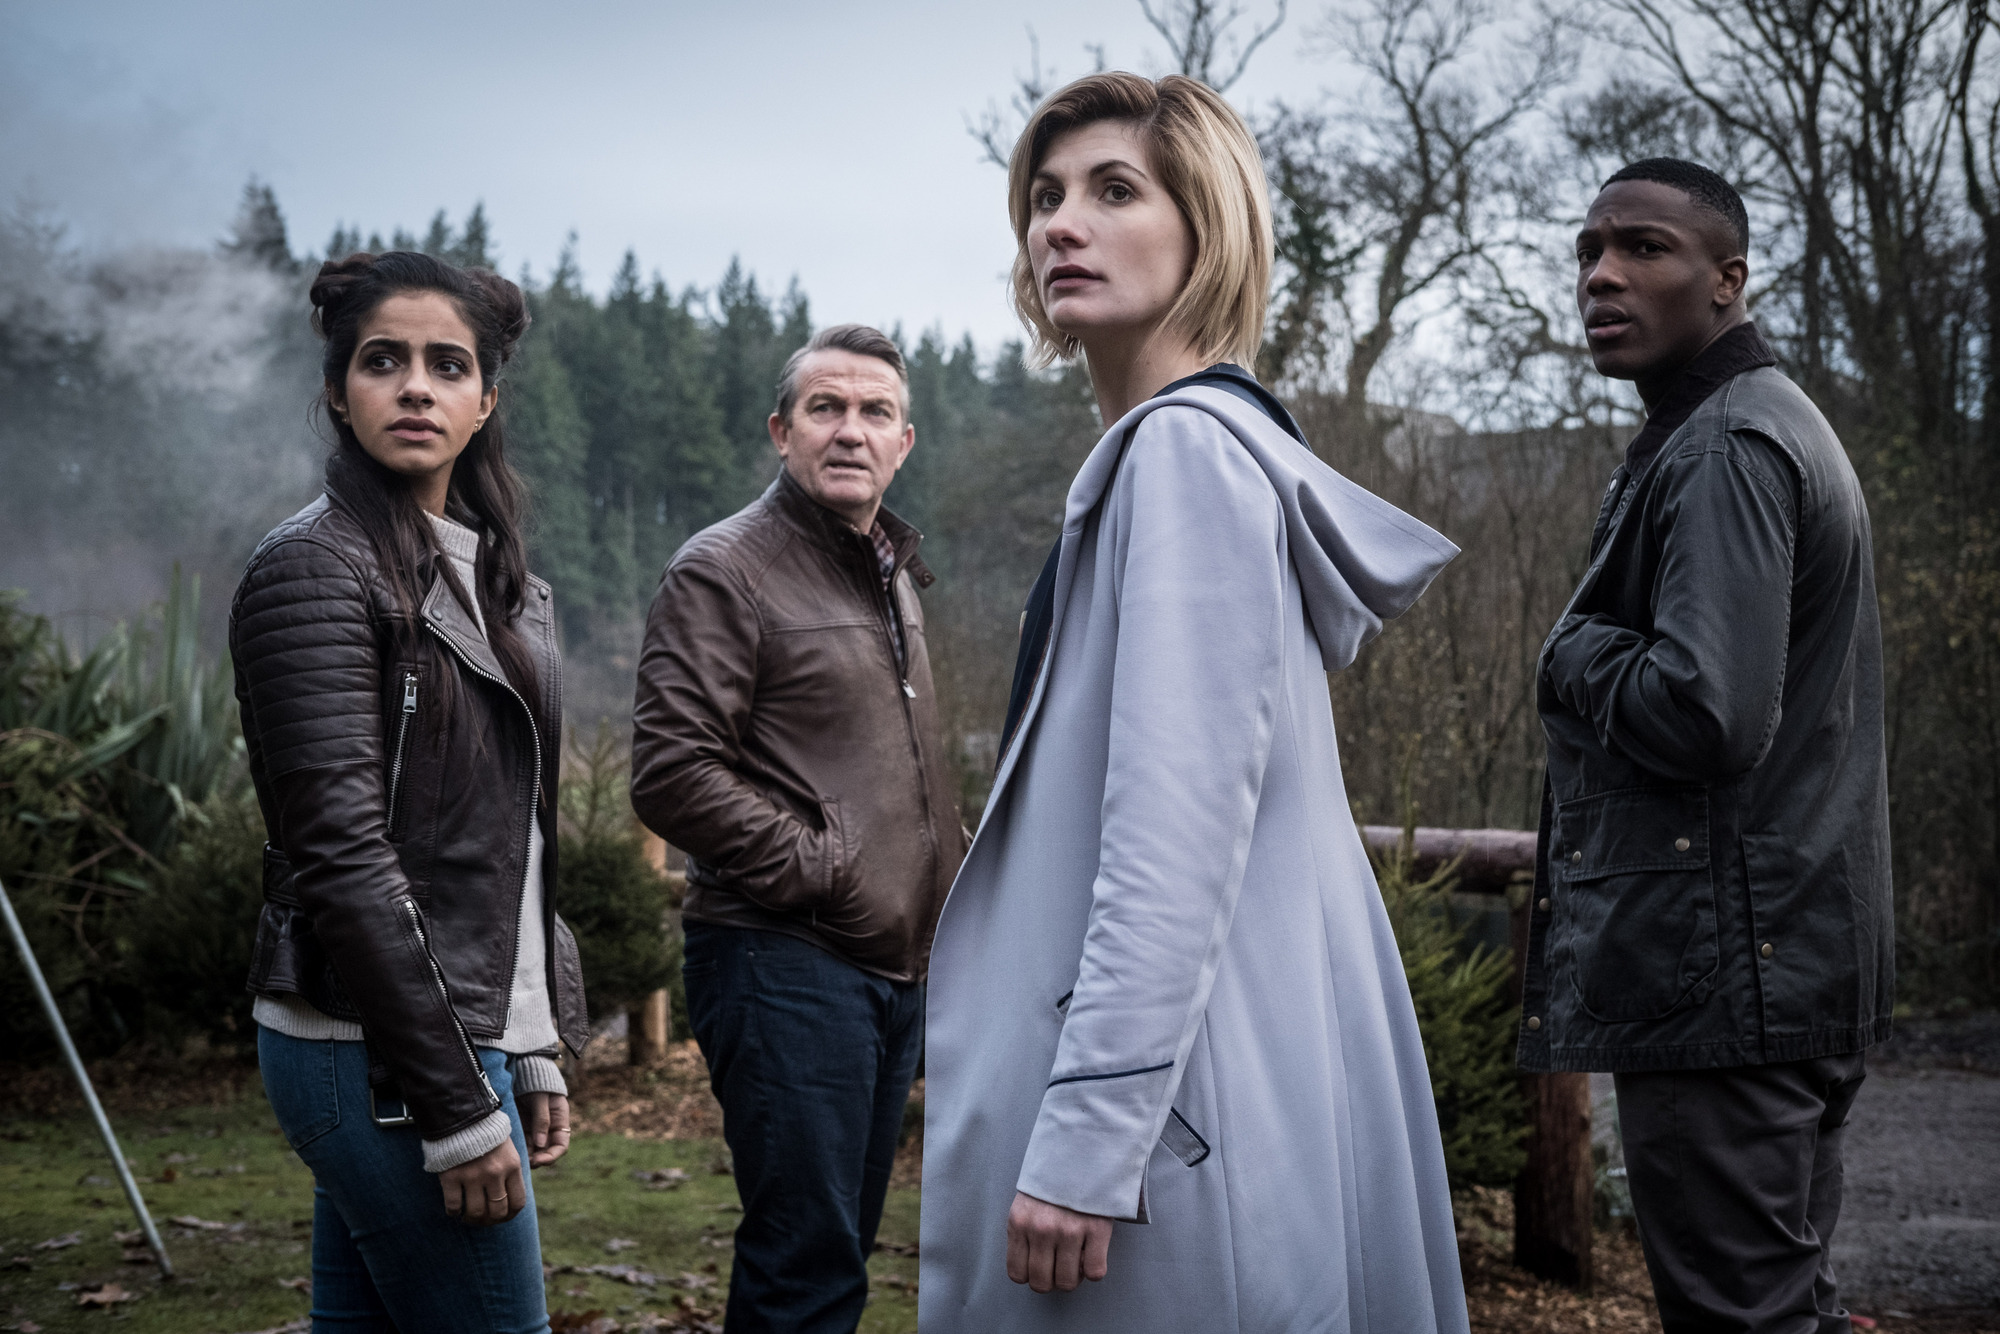 doctor who series 11 easter eggs jodie whittaker says to expect so many references in new. Black Bedroom Furniture Sets. Home Design Ideas